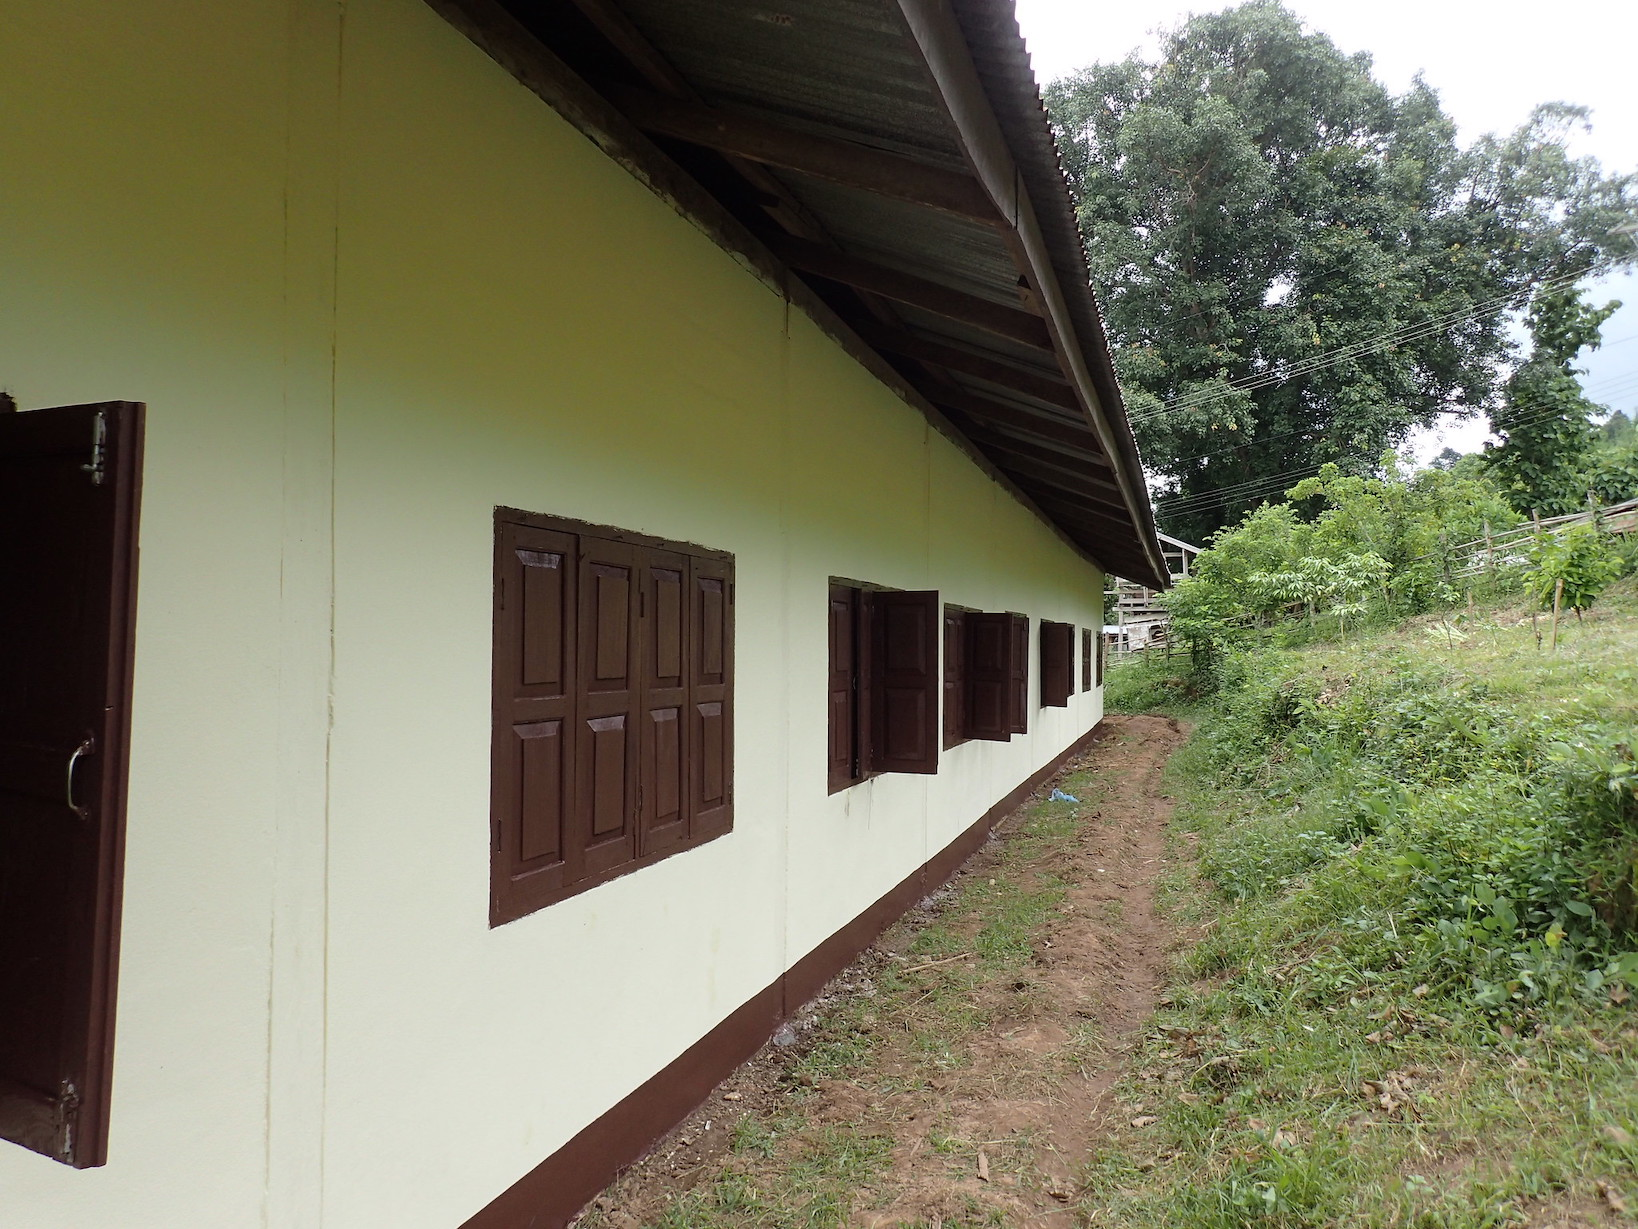 Houaykoualouang Primary School after painting